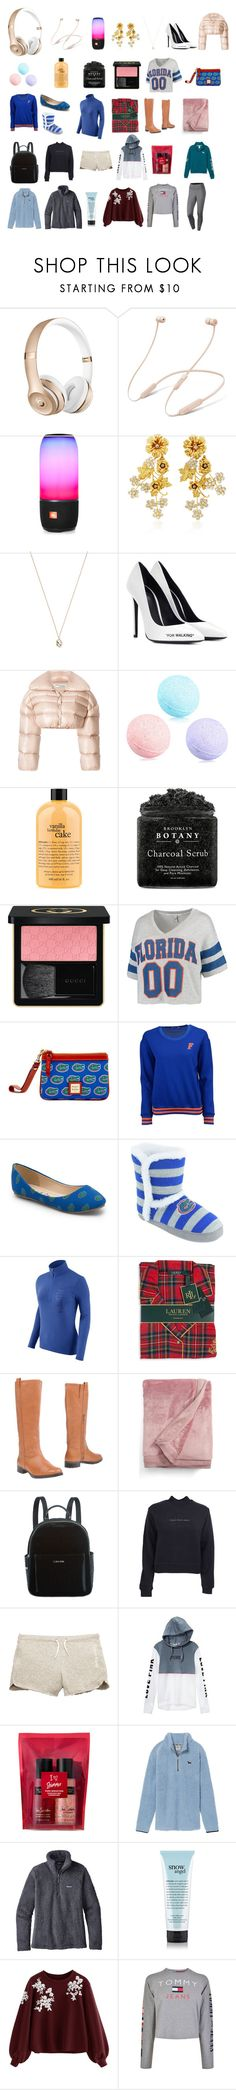 """""""Untitled #487"""" by savannahtaylor950 on Polyvore featuring Beats by Dr. Dre, JBL, Jennifer Behr, Eva Fehren, Off-White, philosophy, Gucci, chicka-d, Dooney & Bourke and nuyu"""